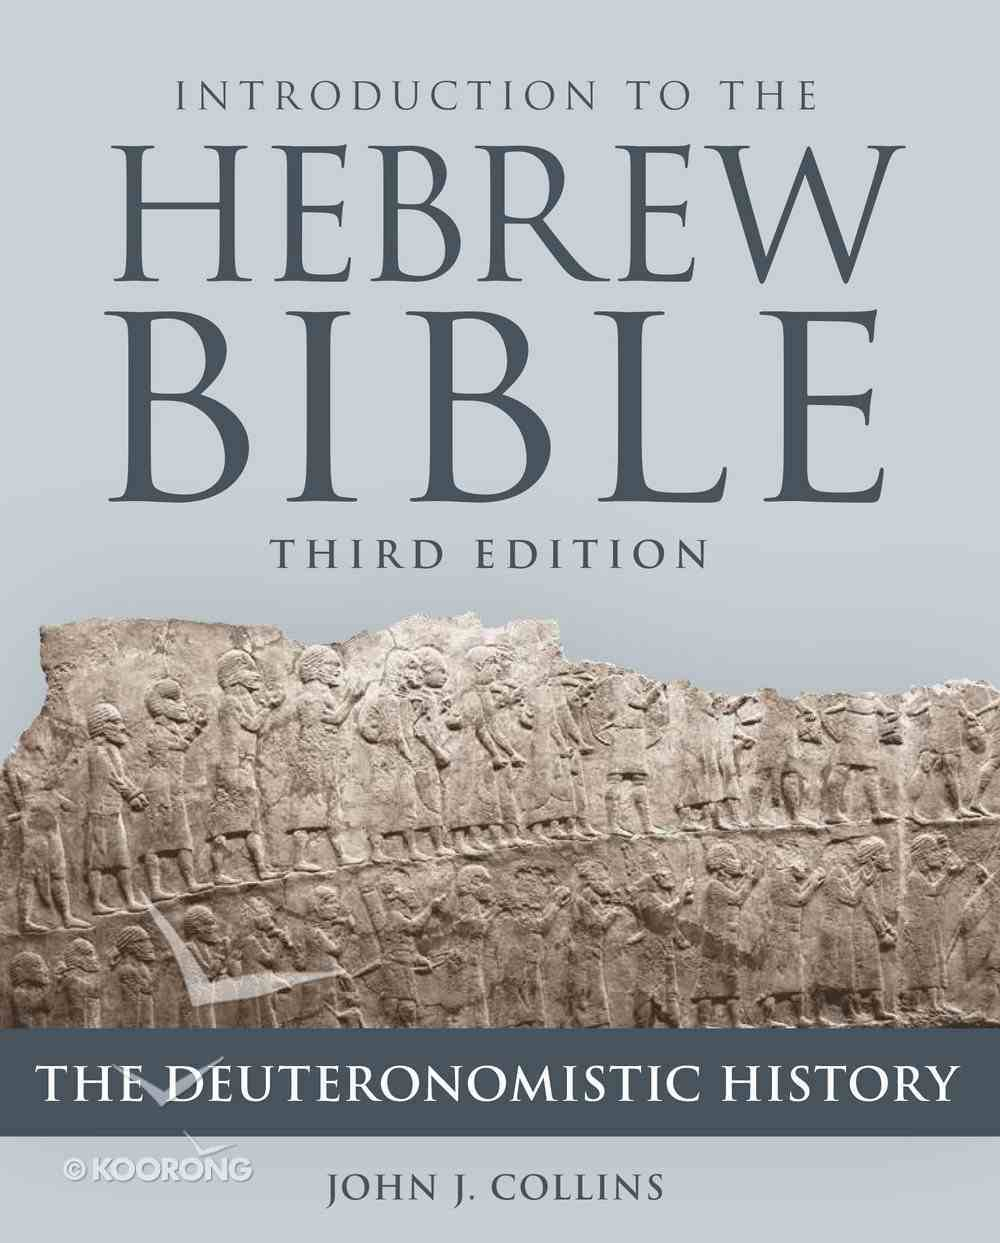 Introduction to the Hebrew Bible: The Deuteronomistic History (Third Edition) Paperback